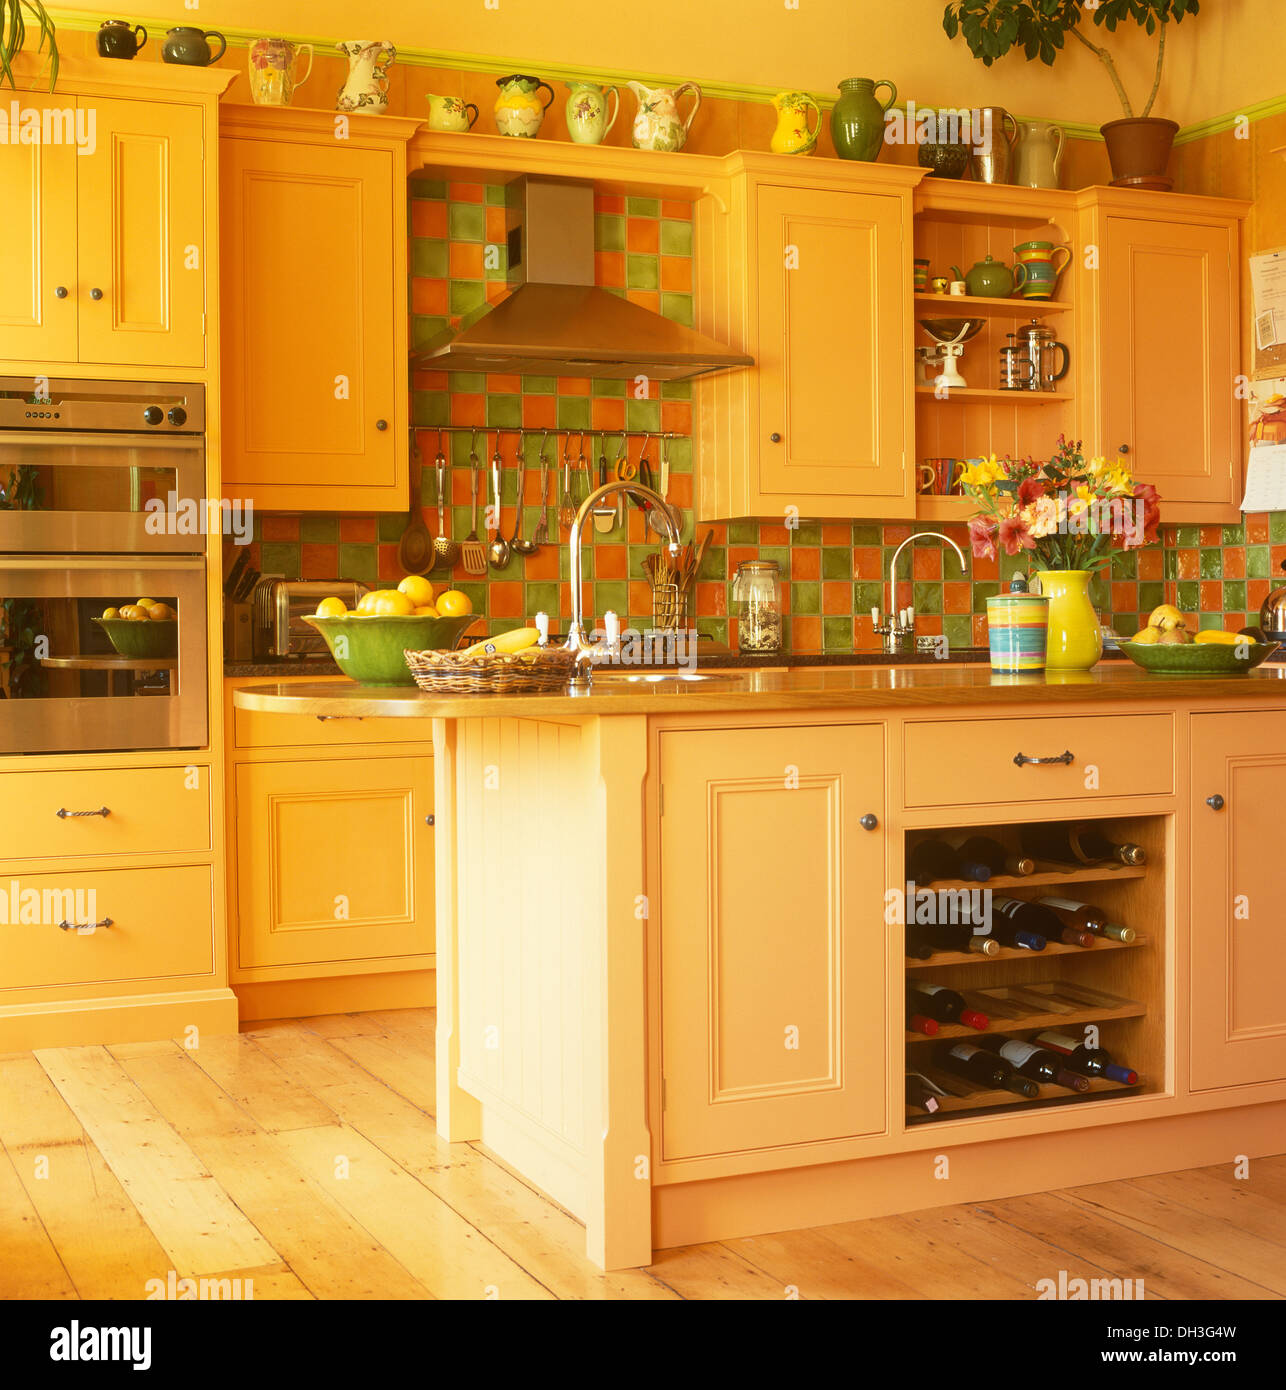 Genial Green+orange Tiles And Island Unit With Integral Wine Storage In Yellow  Kitchen With Pale Orange Units And Wooden Floor